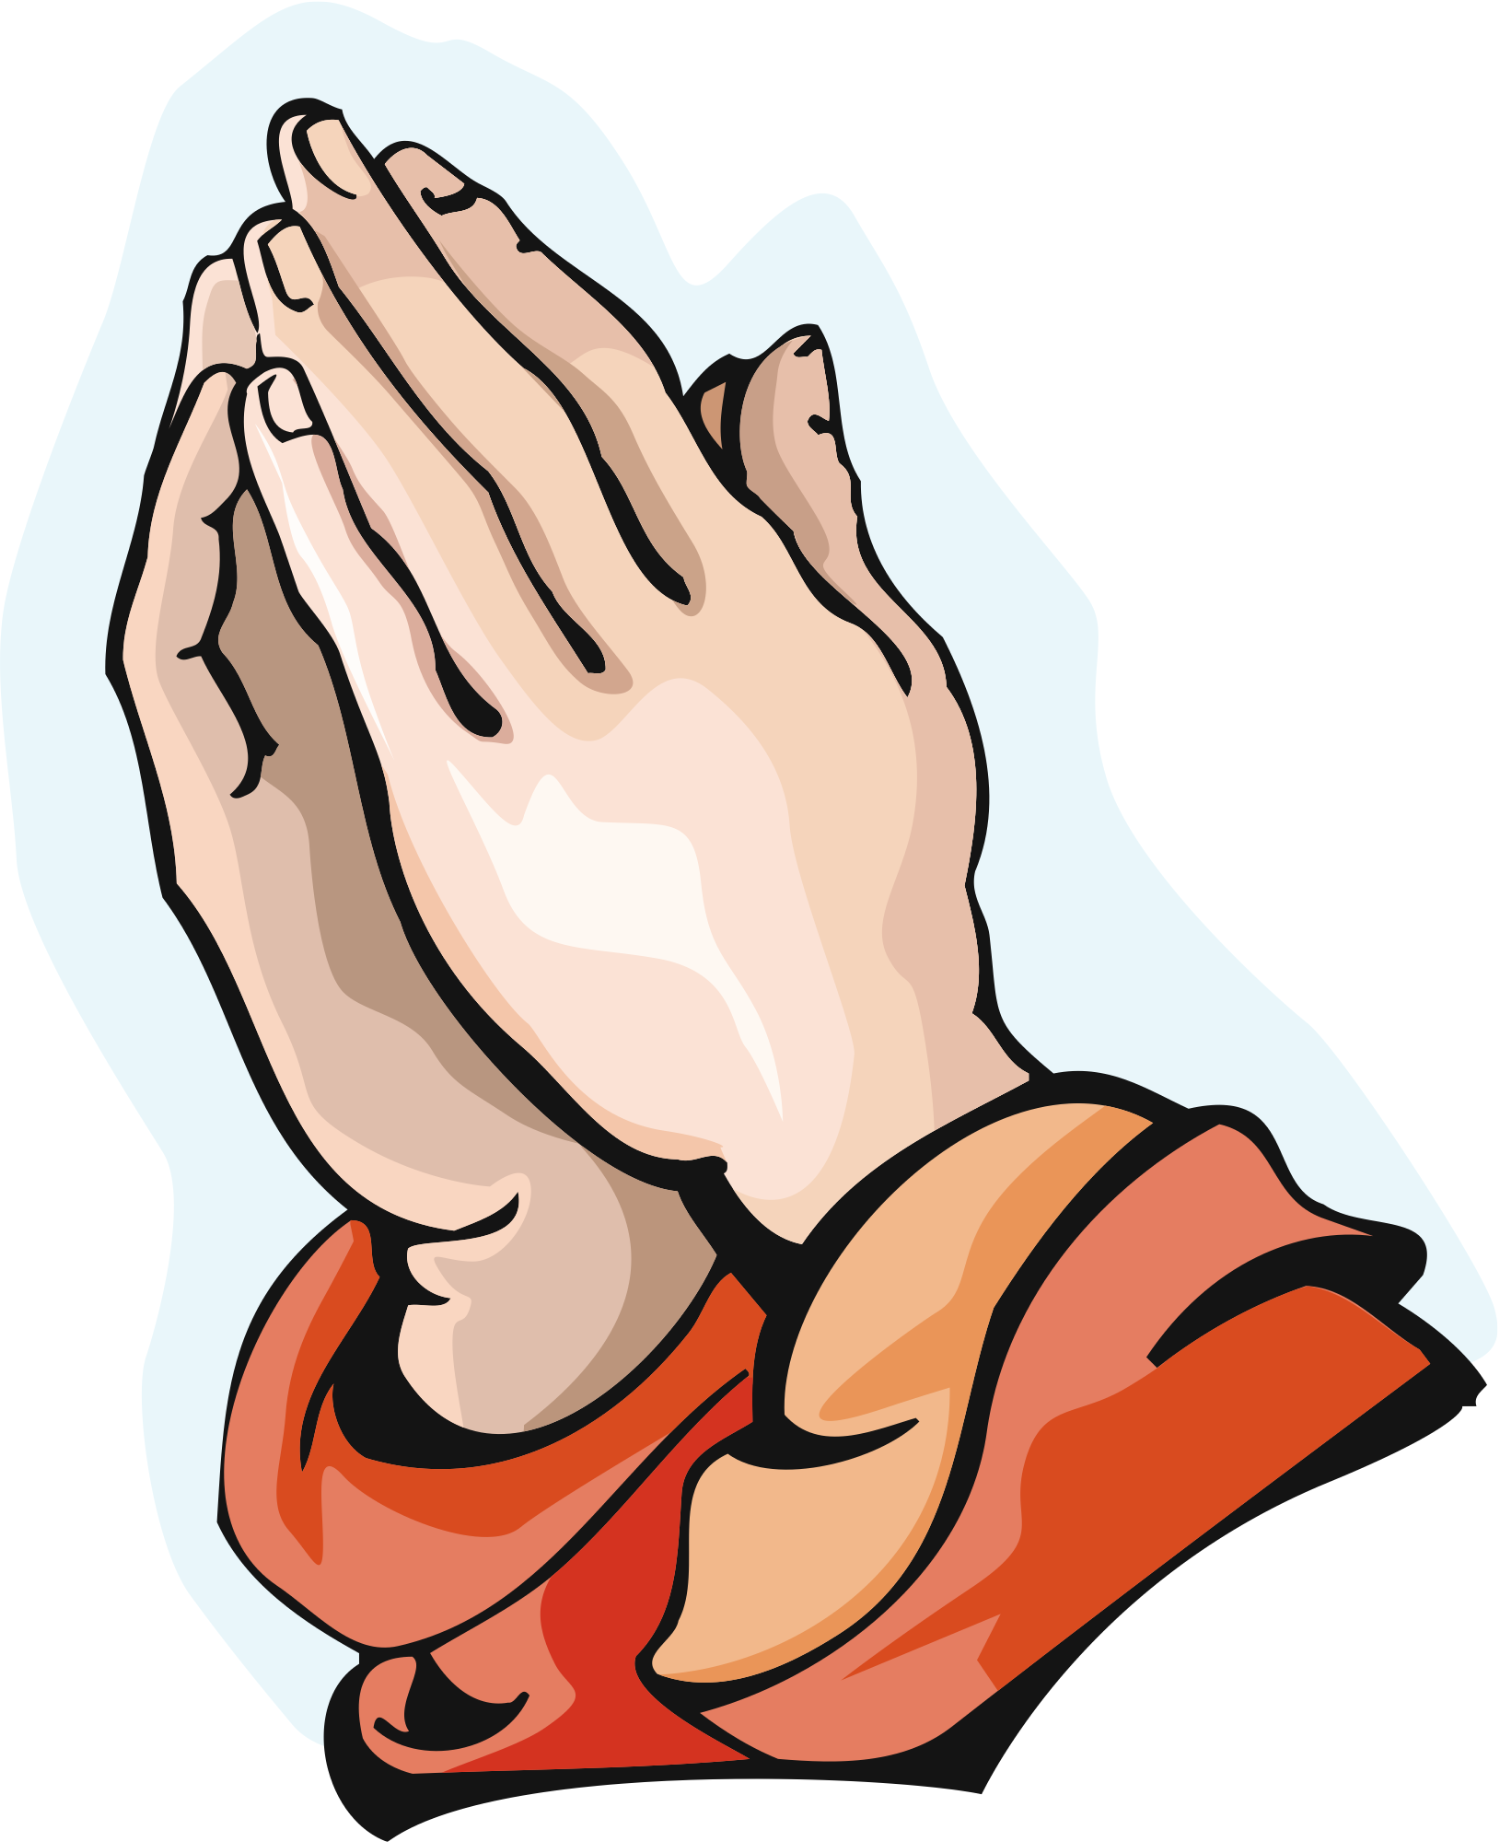 silhouette of child praying at getdrawings com free for personal rh getdrawings com picture of a child praying clipart image of child praying clipart